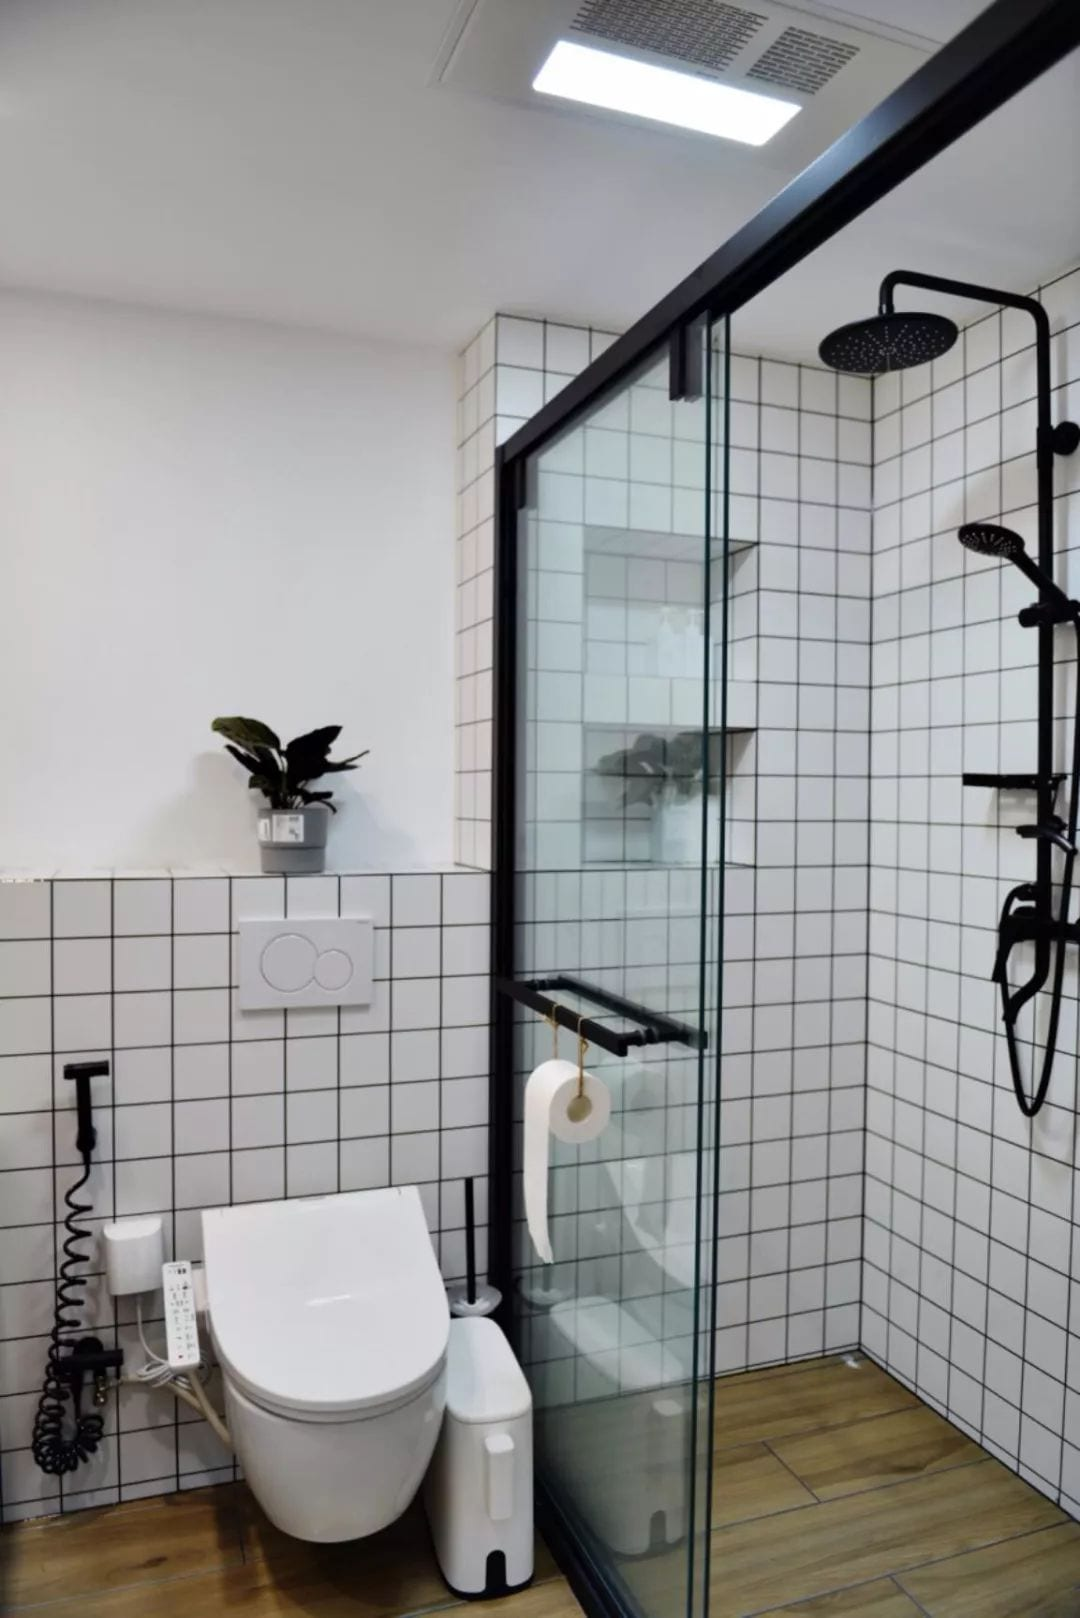 The sudden water flow after the shower is turned off is not a quality problem.